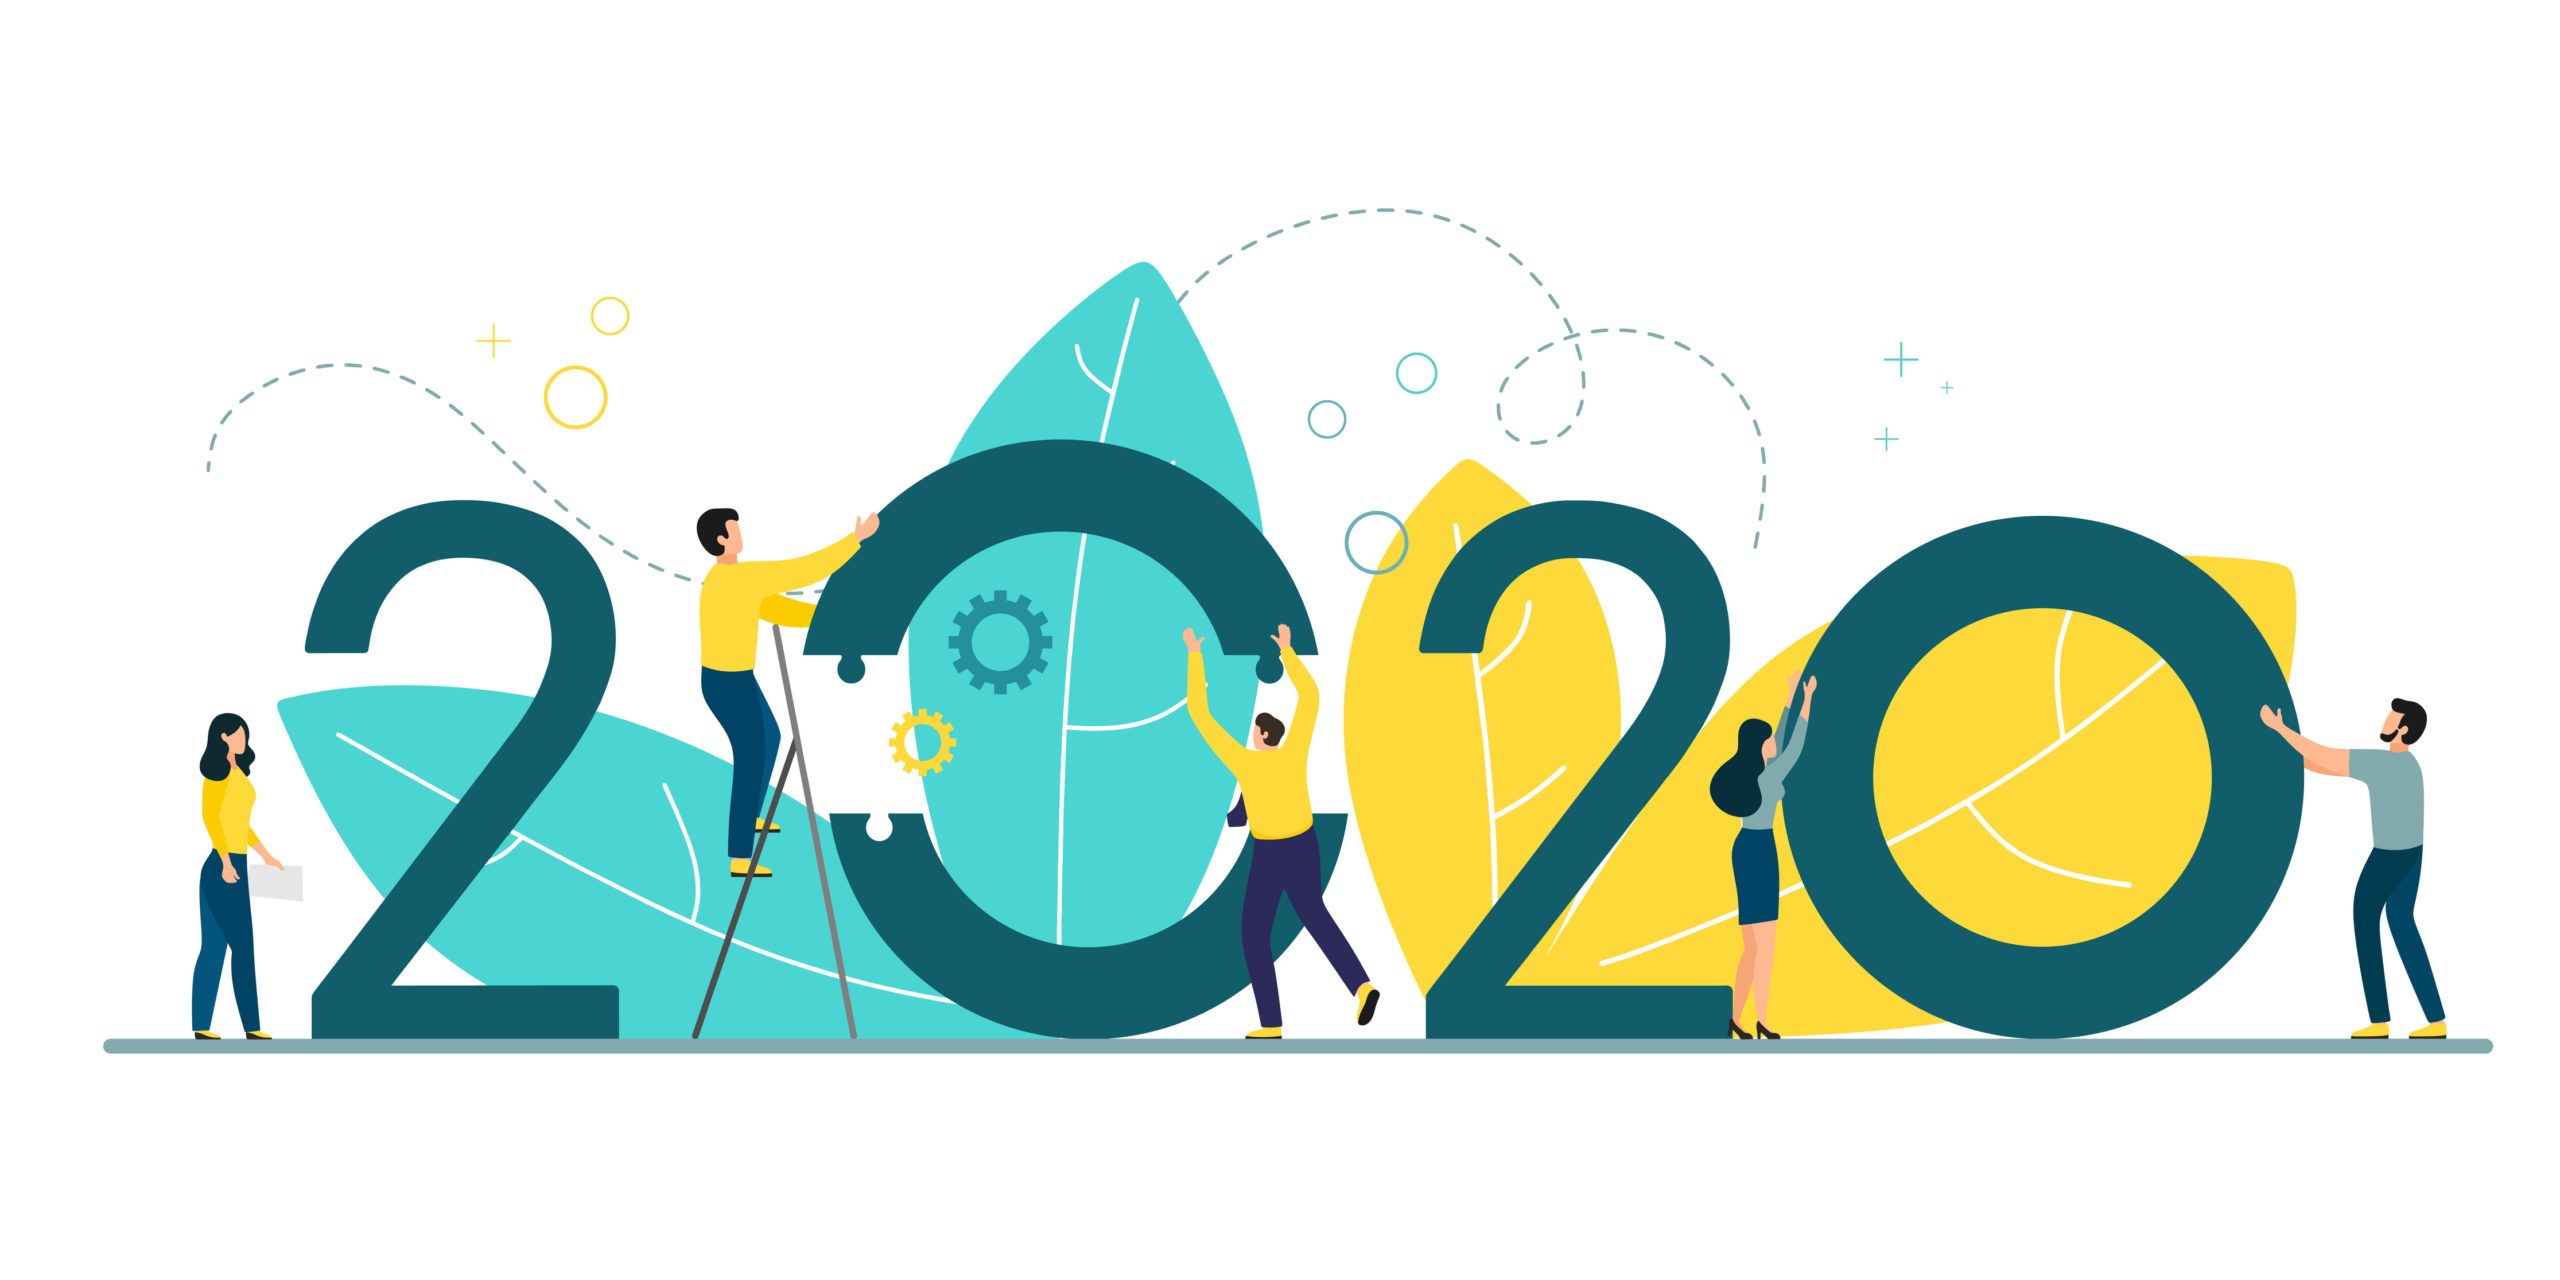 Step into the New Decade with the Top CX Trends for 2020